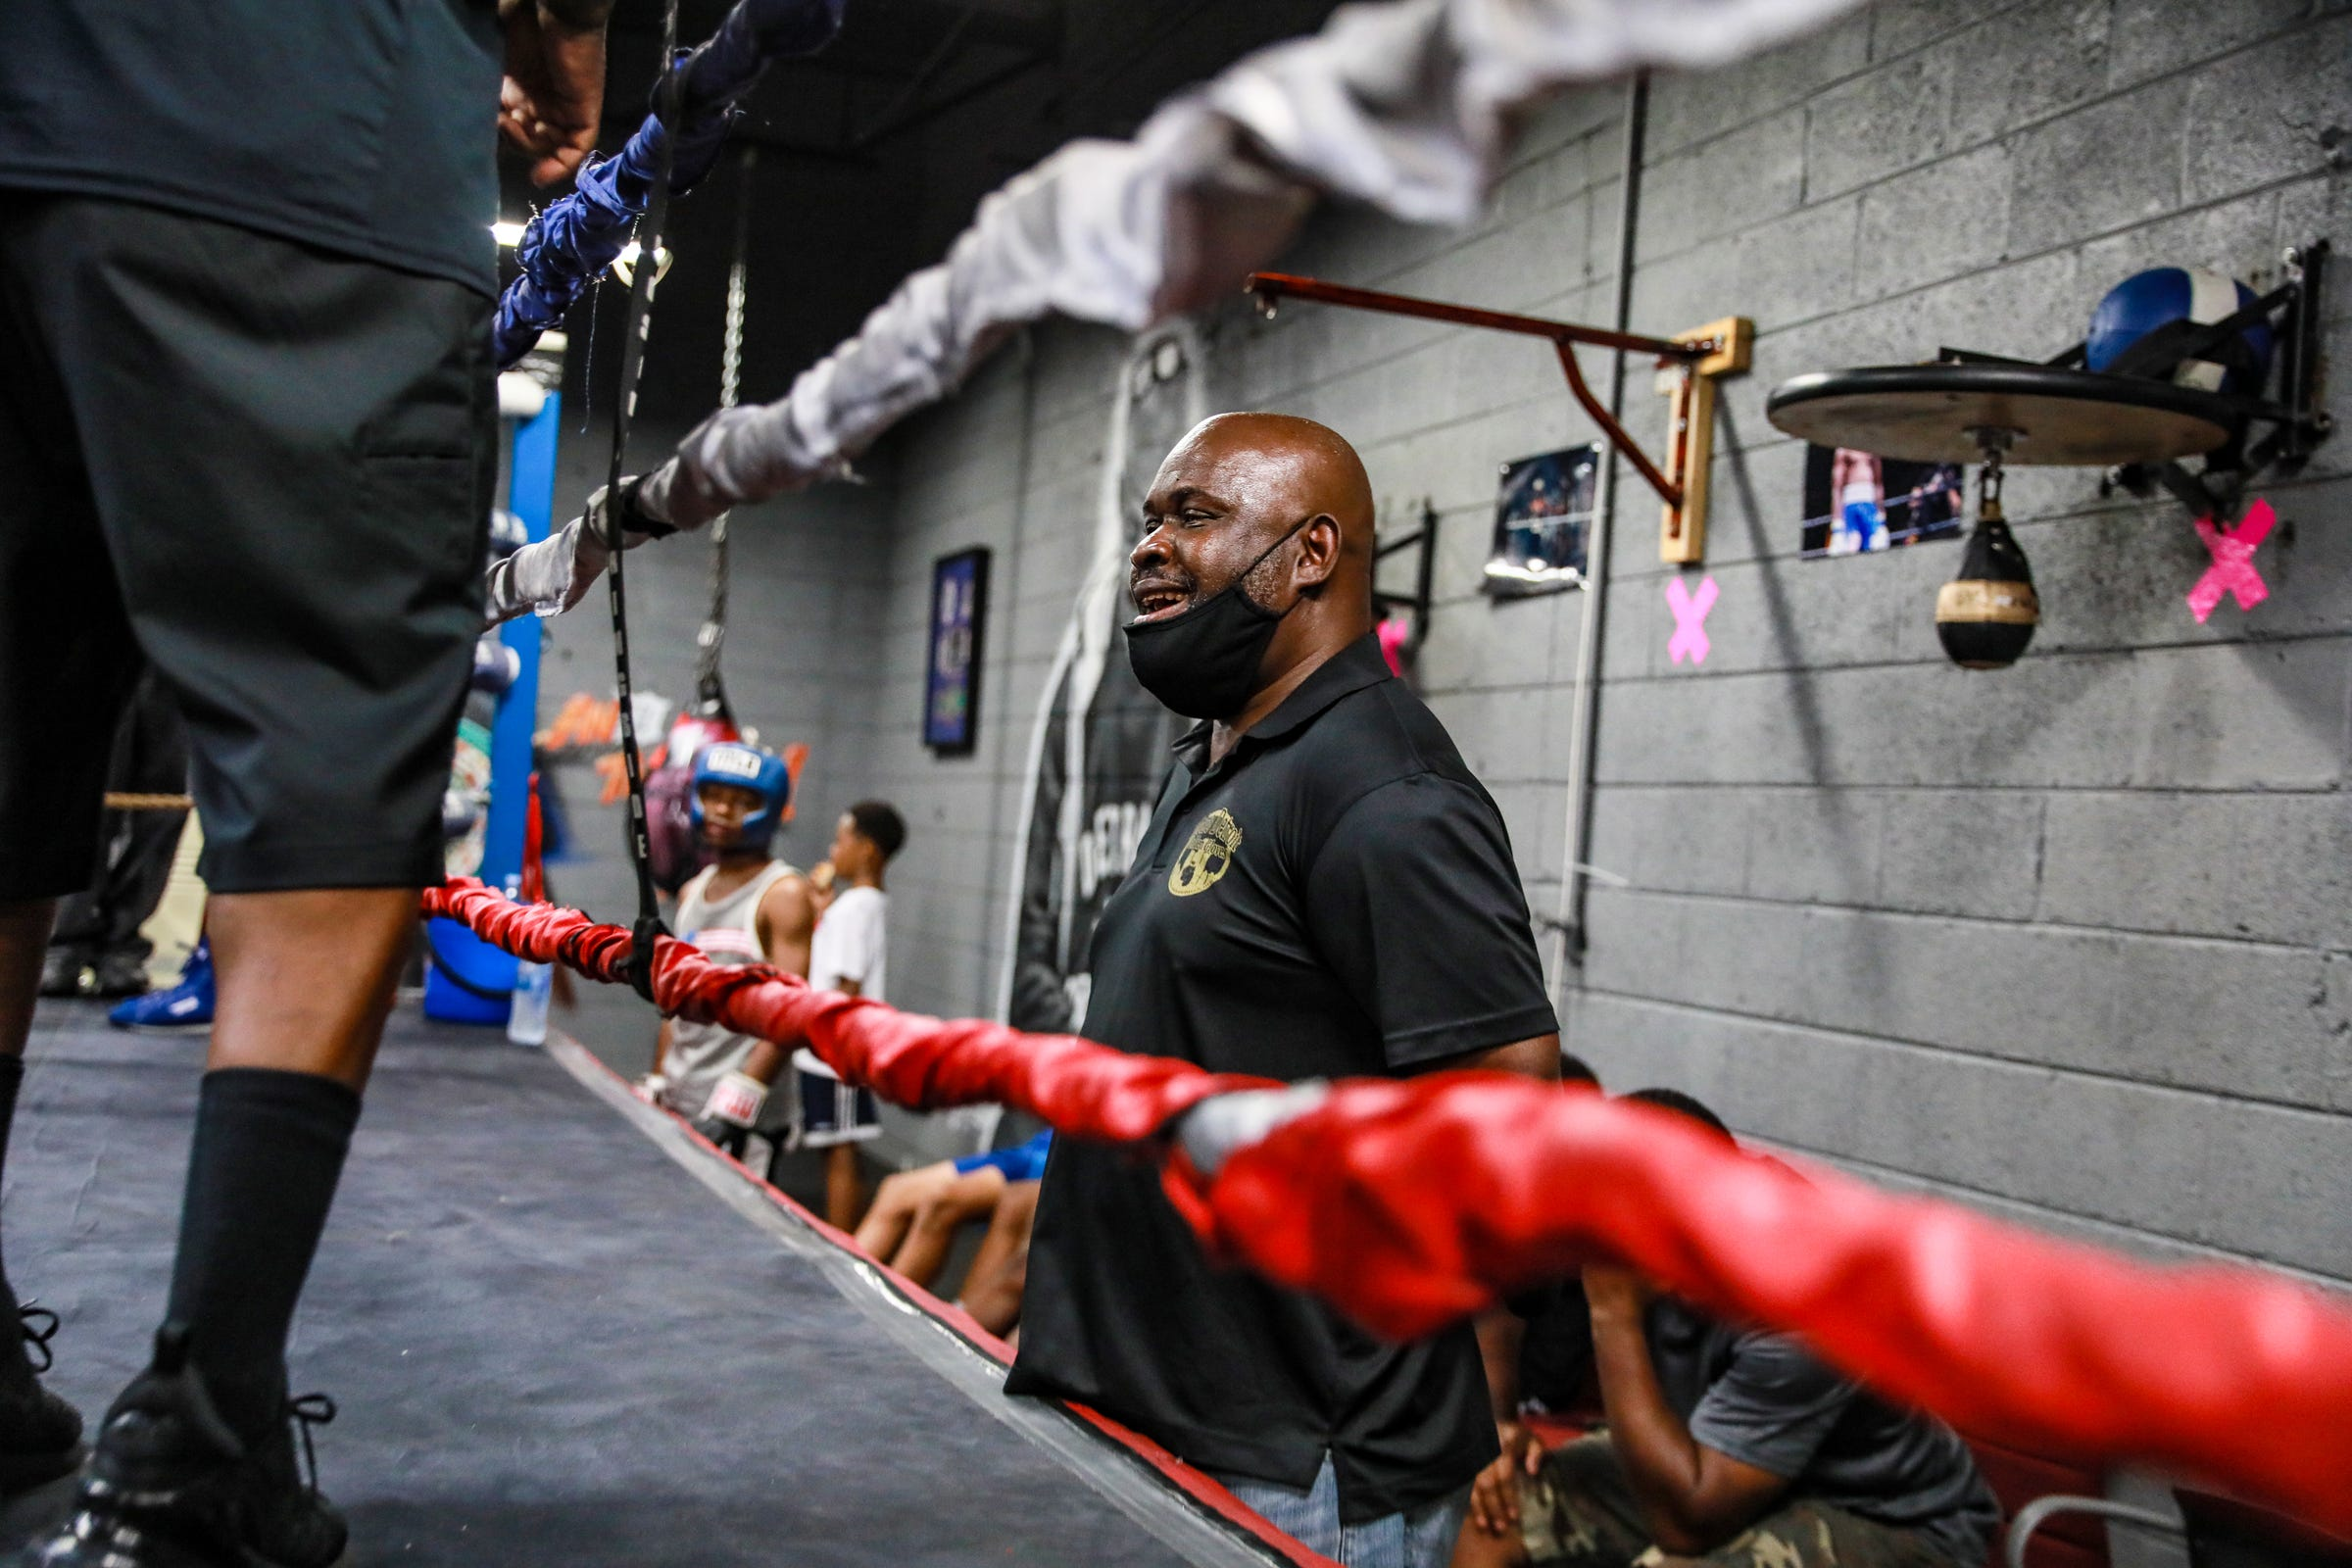 Ansel Stewart watches sparring matches at the SuperBad Boxing Gym in Detroit on Saturday, June 5, 2021.